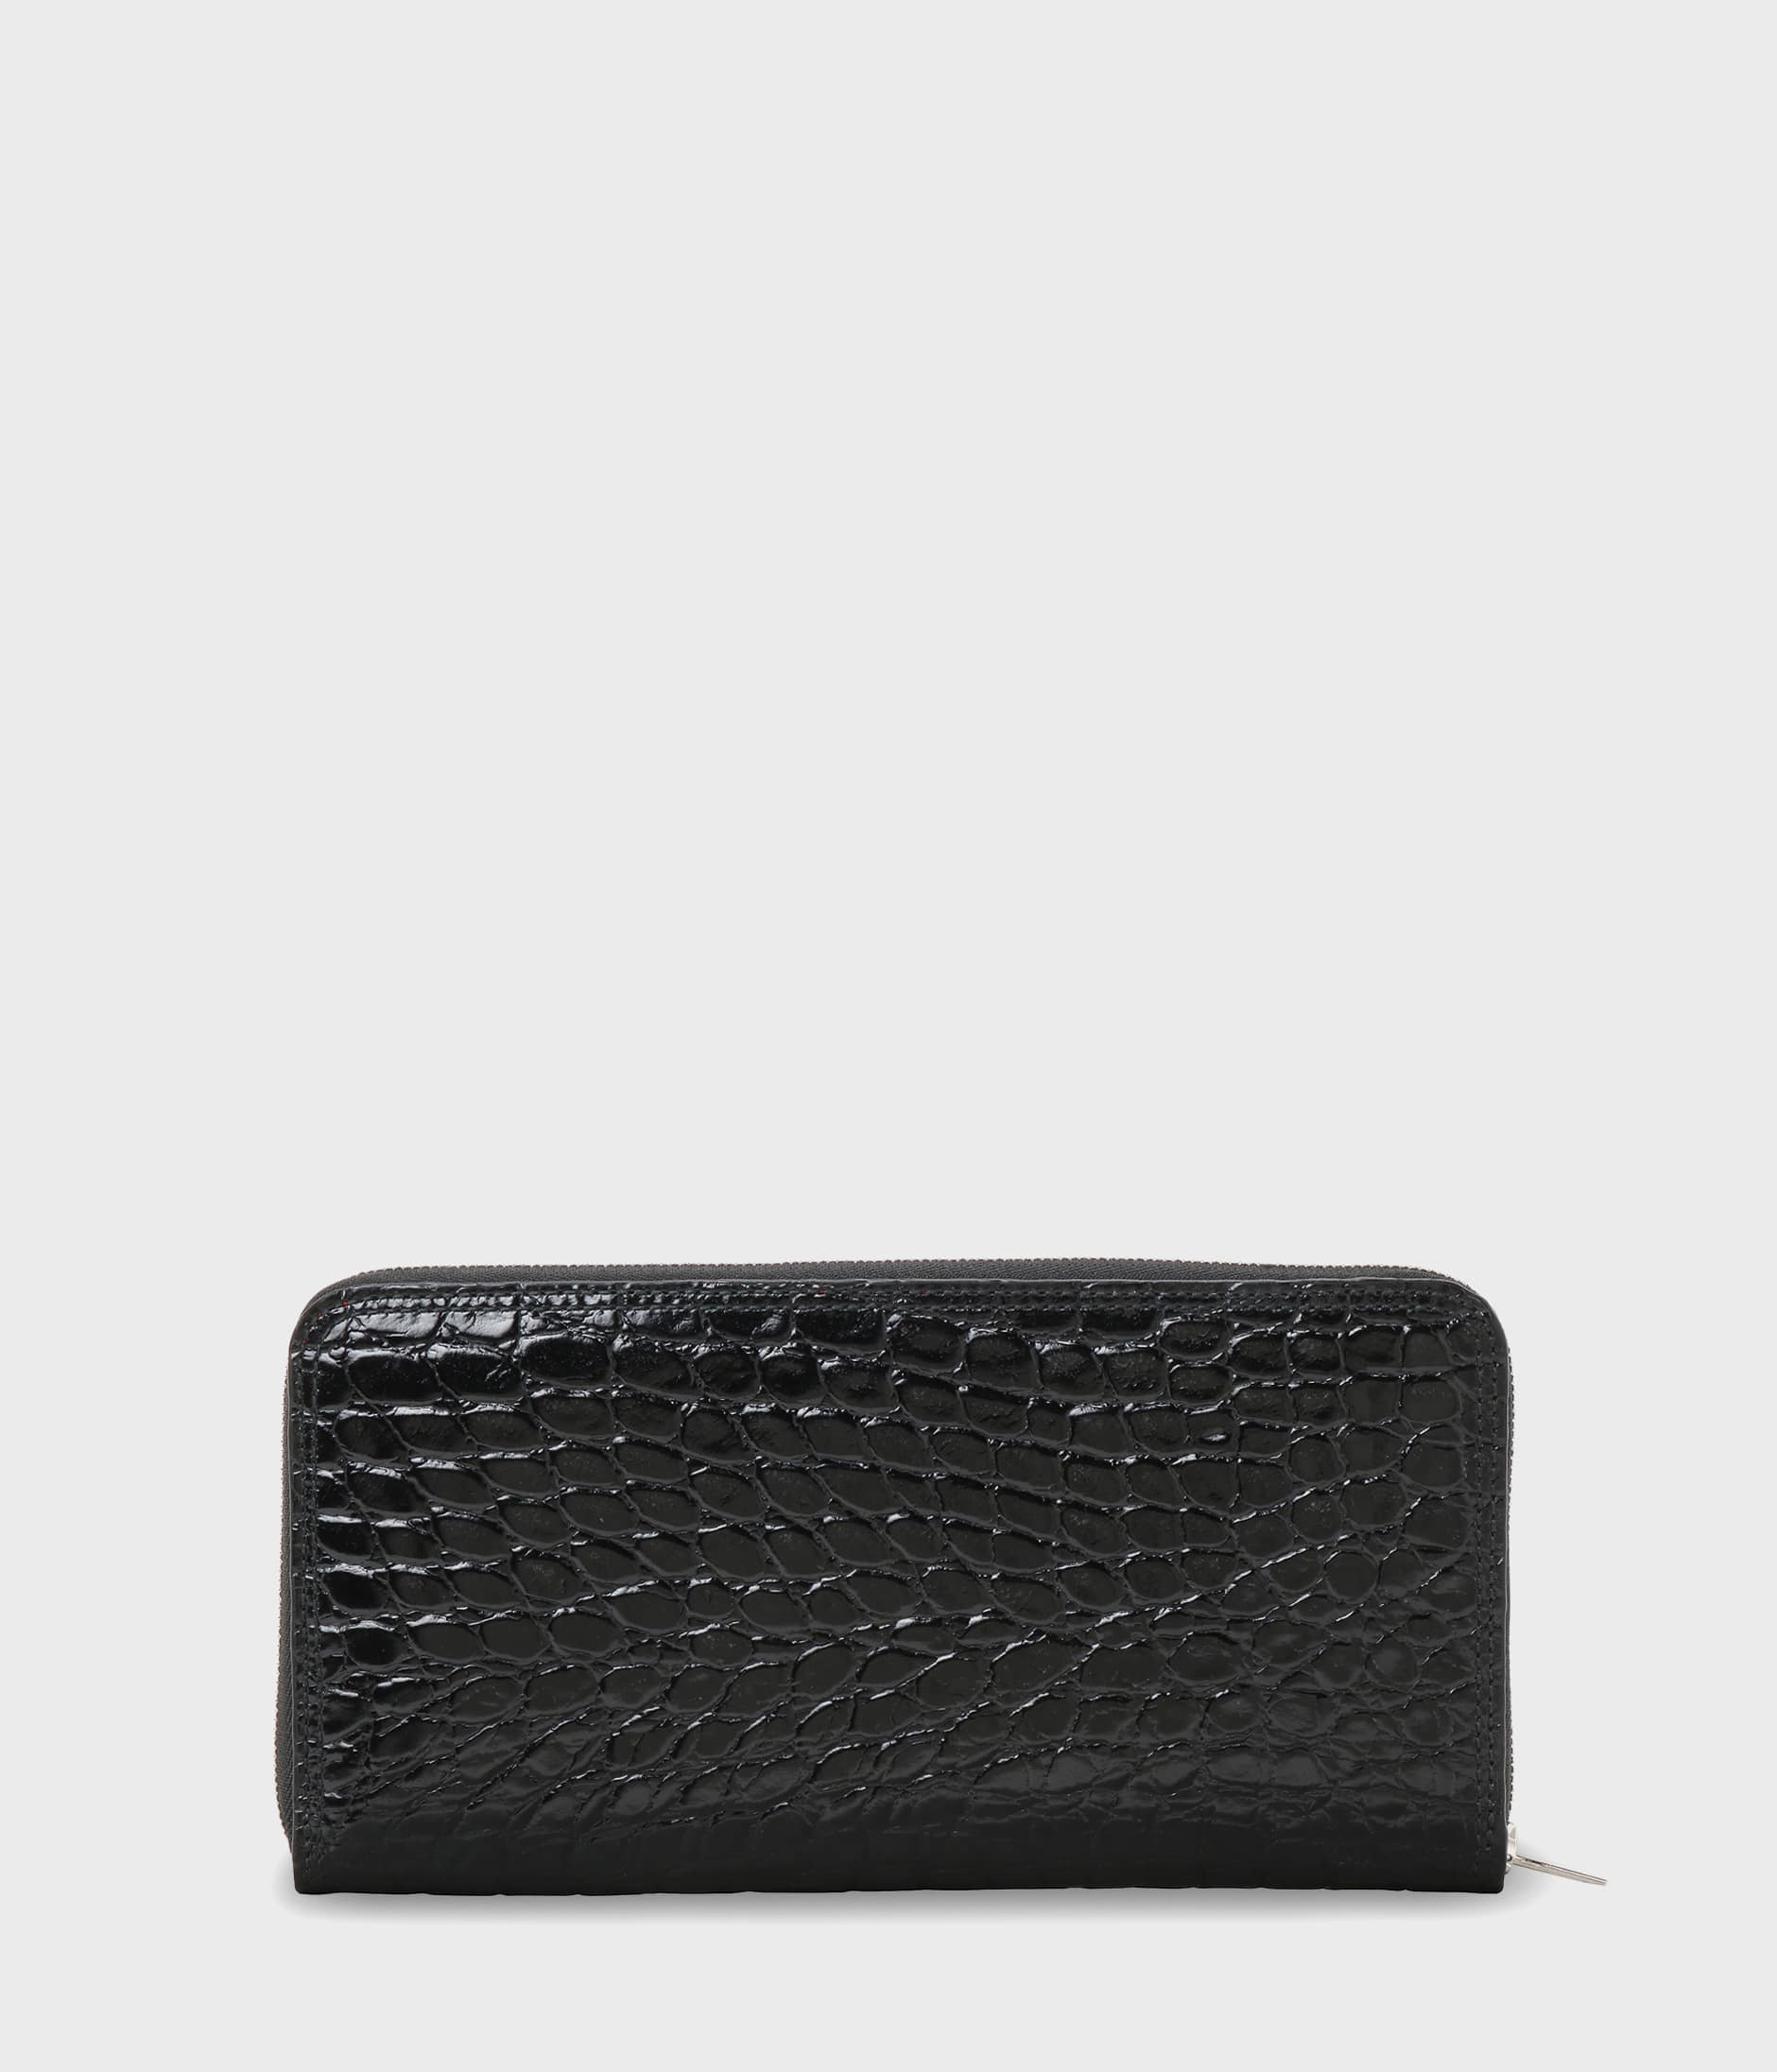 ZIP AROUND WALLET 詳細画像 BLACK 2